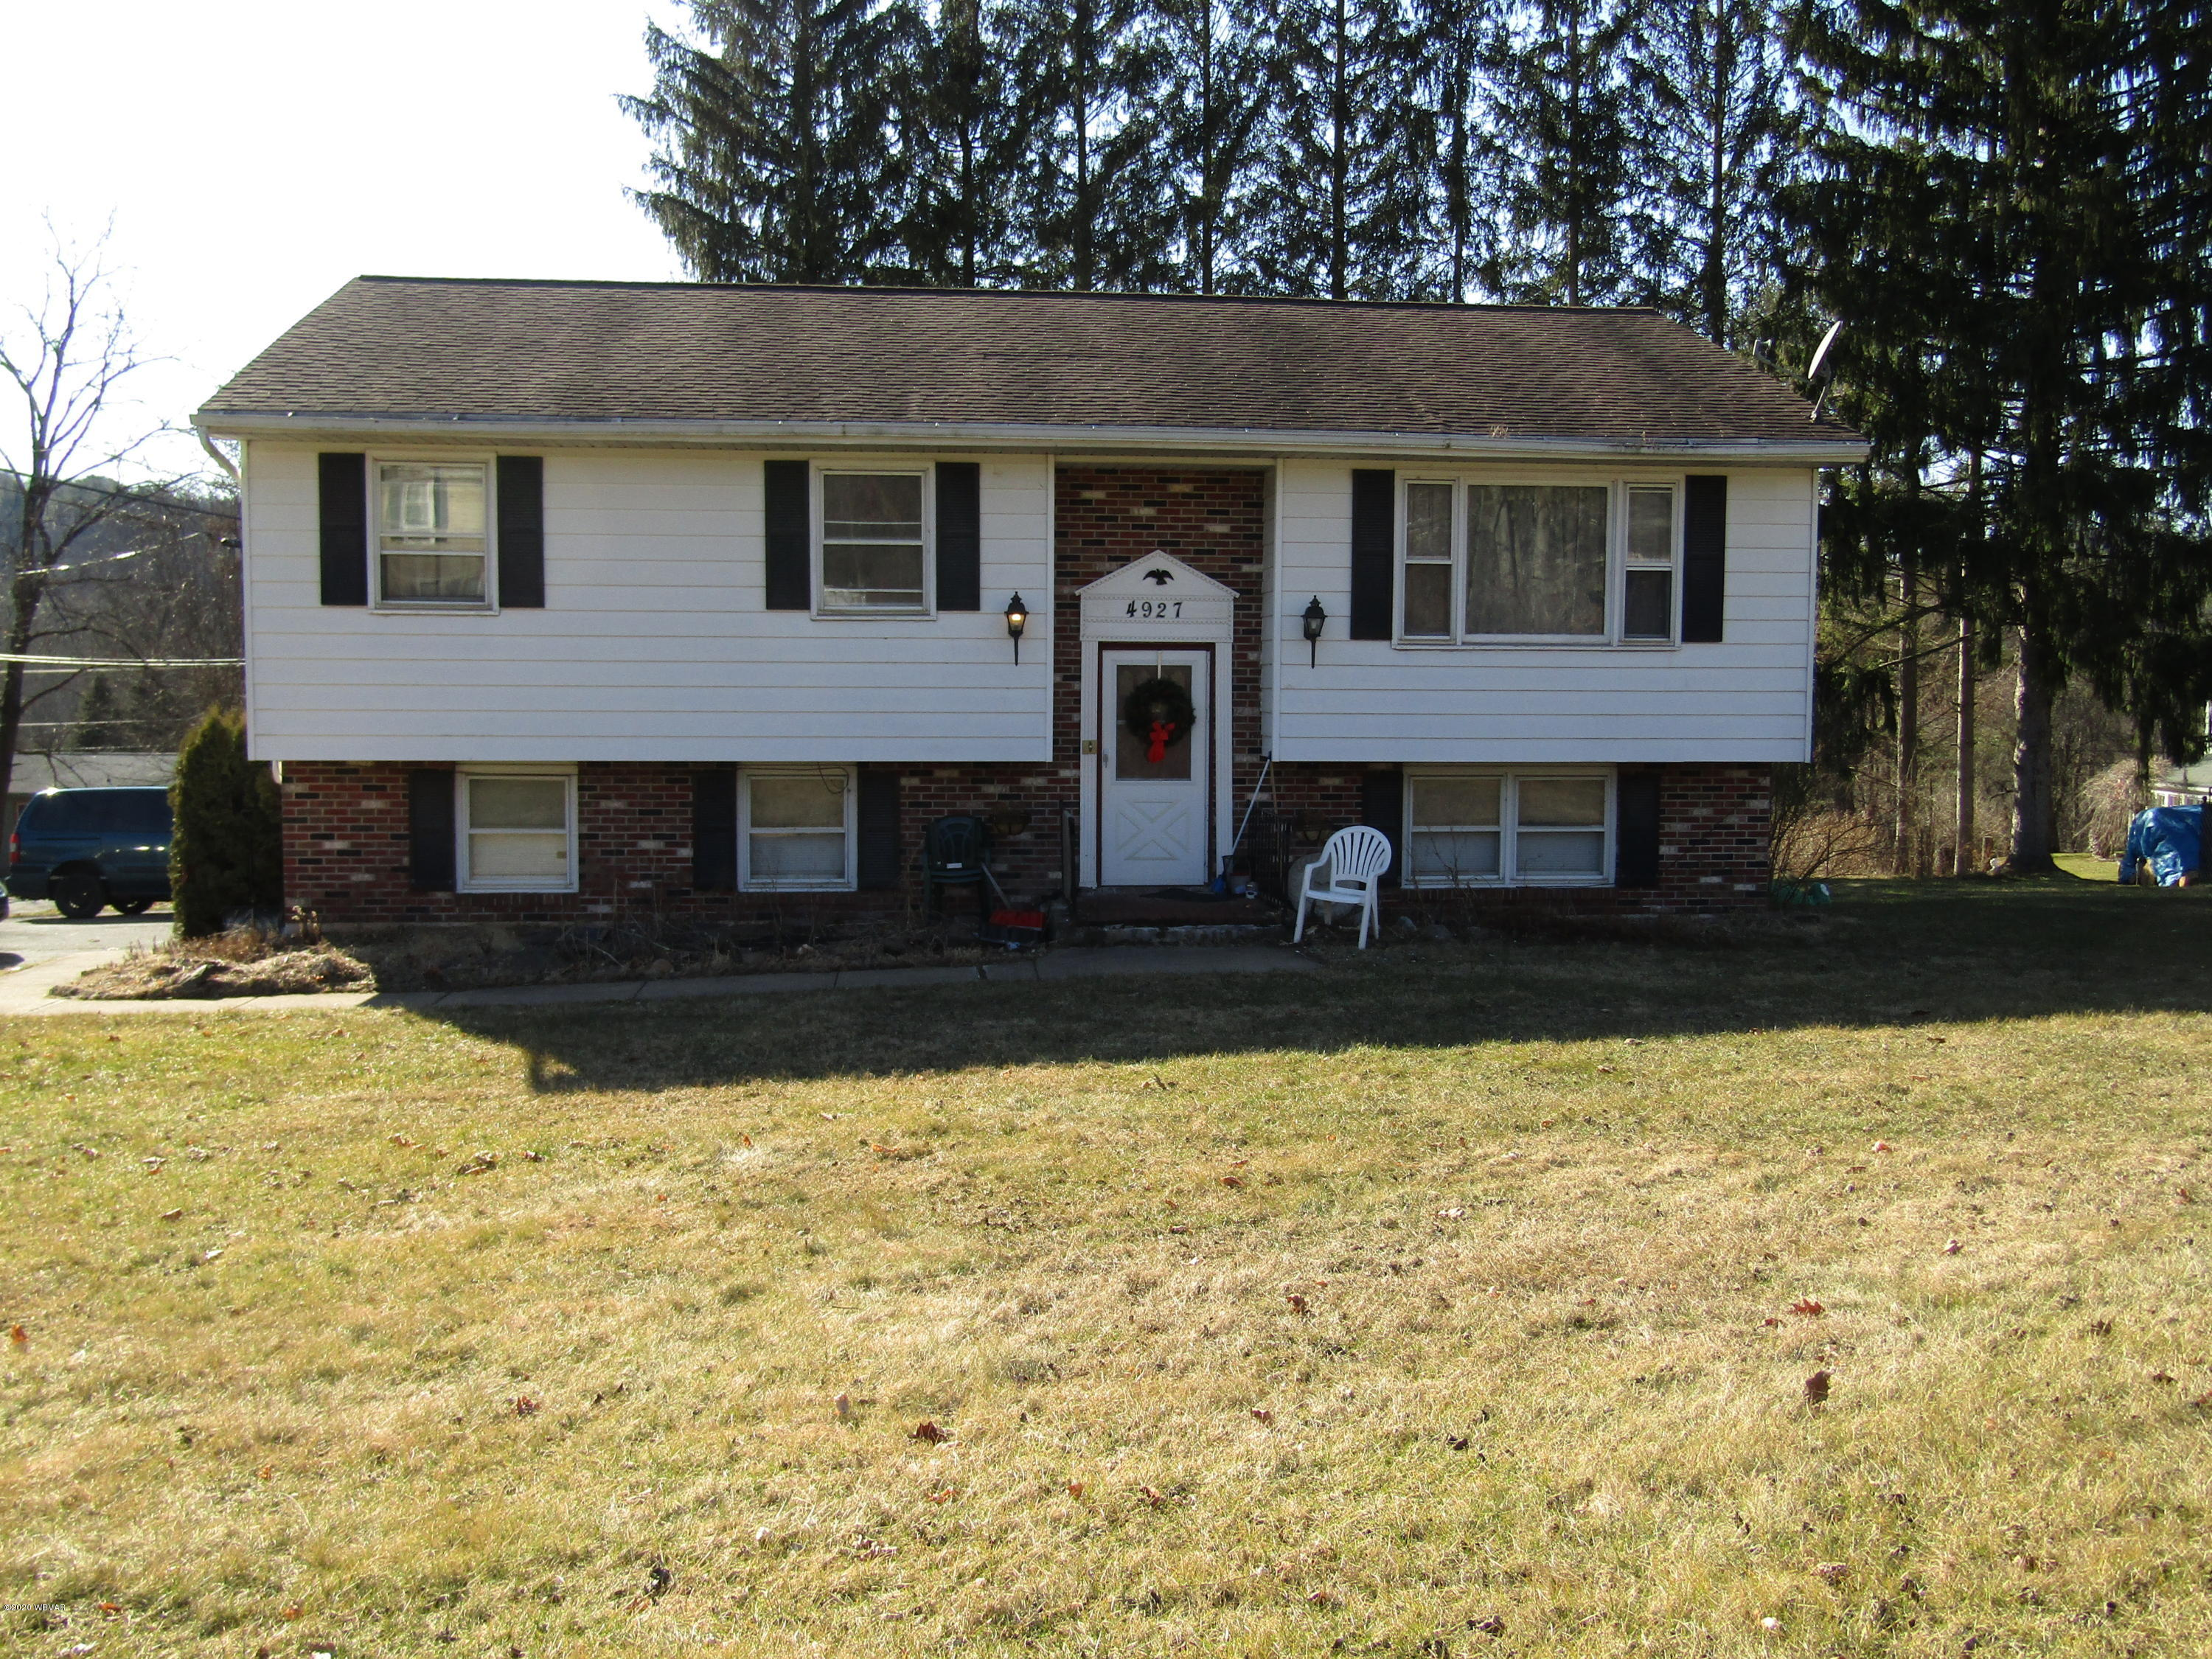 4927 LYCOMING CREEK ROAD, Cogan Station, PA 17728, ,Multi-units,For sale,LYCOMING CREEK,WB-89647